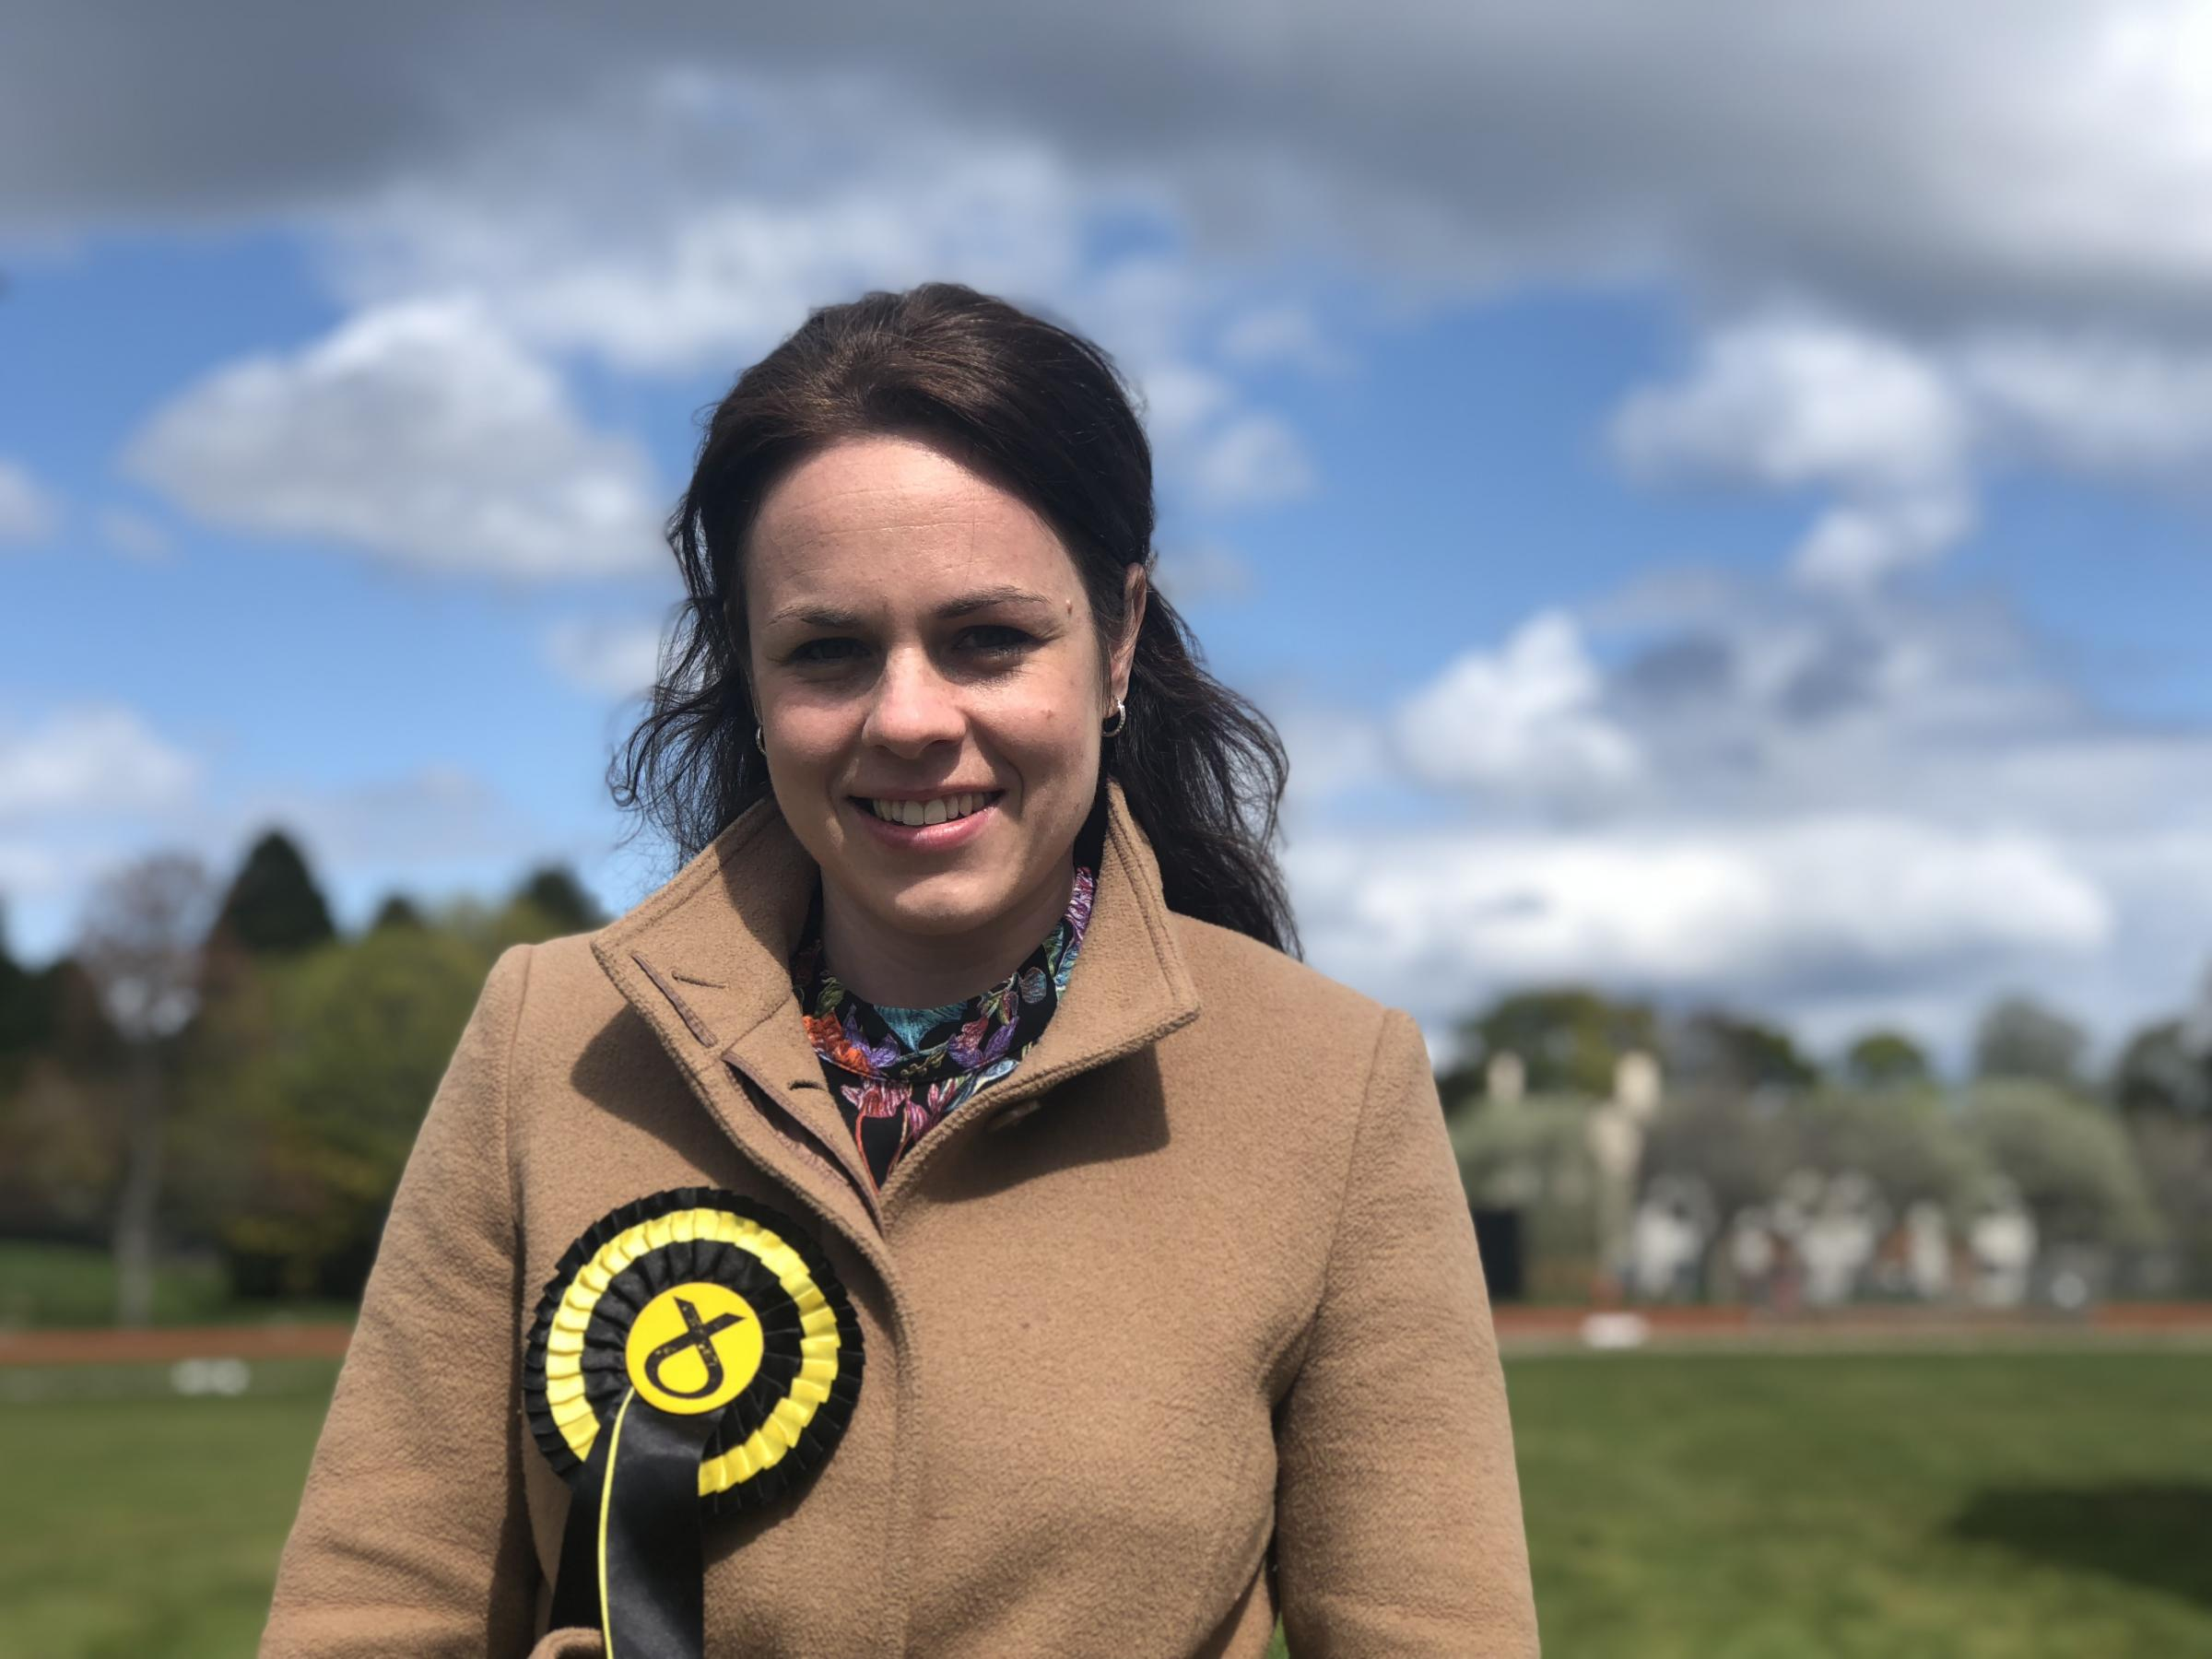 Stunning win for Kate Forbes as Tory to SNP swing gives her huge majority